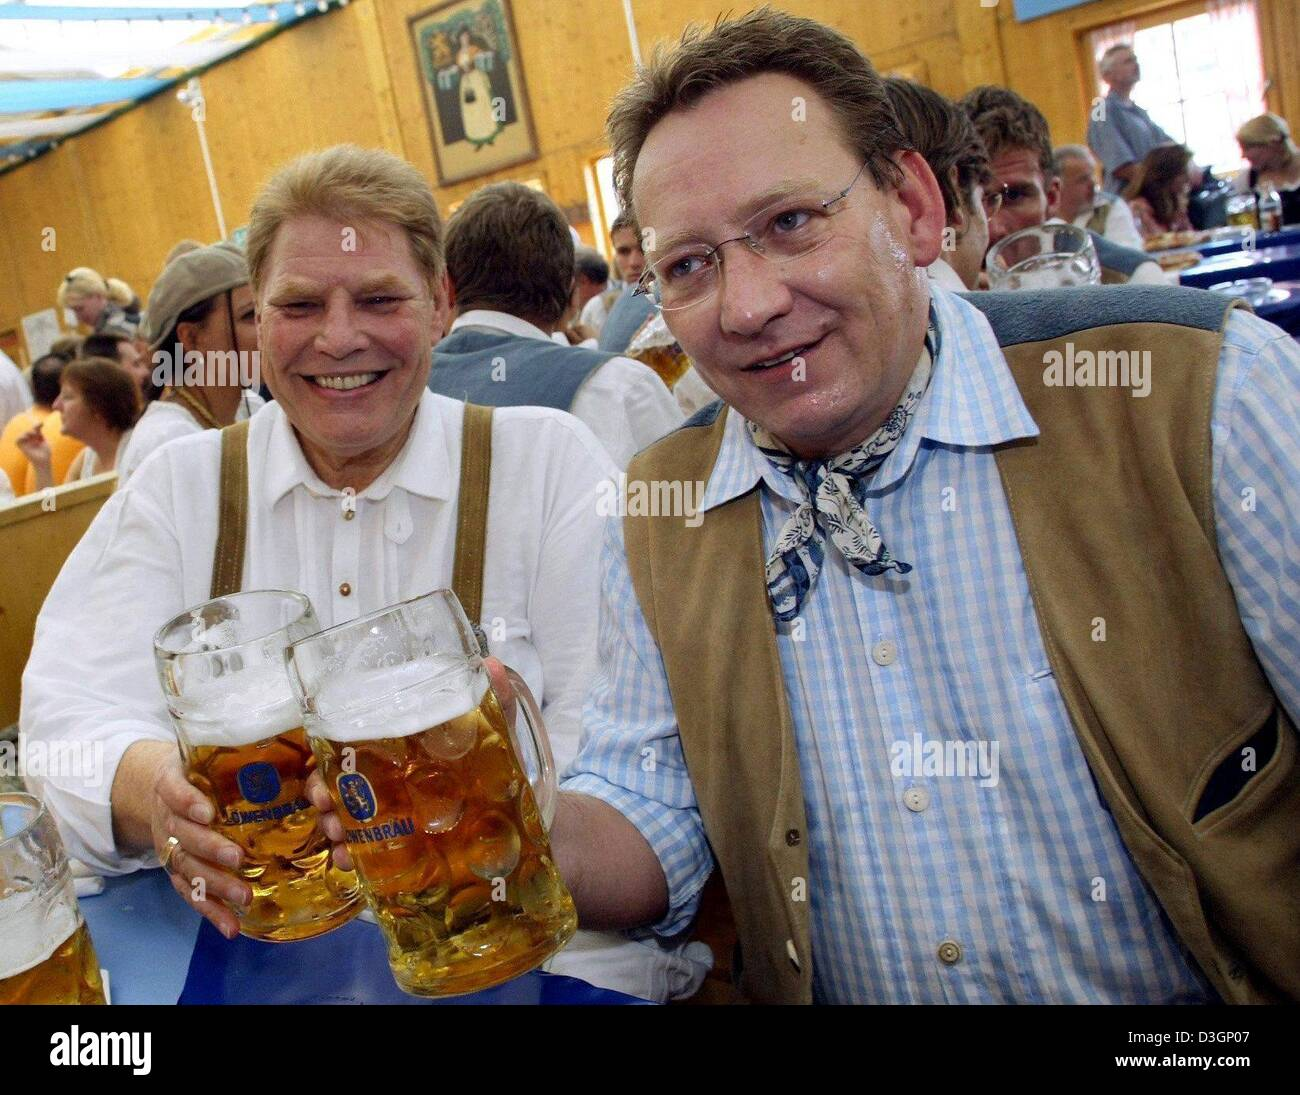 (dpa files) The president of the German premier league soccer club TSV 1860 MunichKarl-Heinz Wildmoser (left ) and his son and business manager Karl-Heinz Wildmoser junior celebrate on the Oktoberfest in Munich on 21 September 2003. Wildmoser was arrested on Tuesday, 9 March 2004, along with his son as well as two unnamed persons. An official said that they were investigating fraud Stock Photo